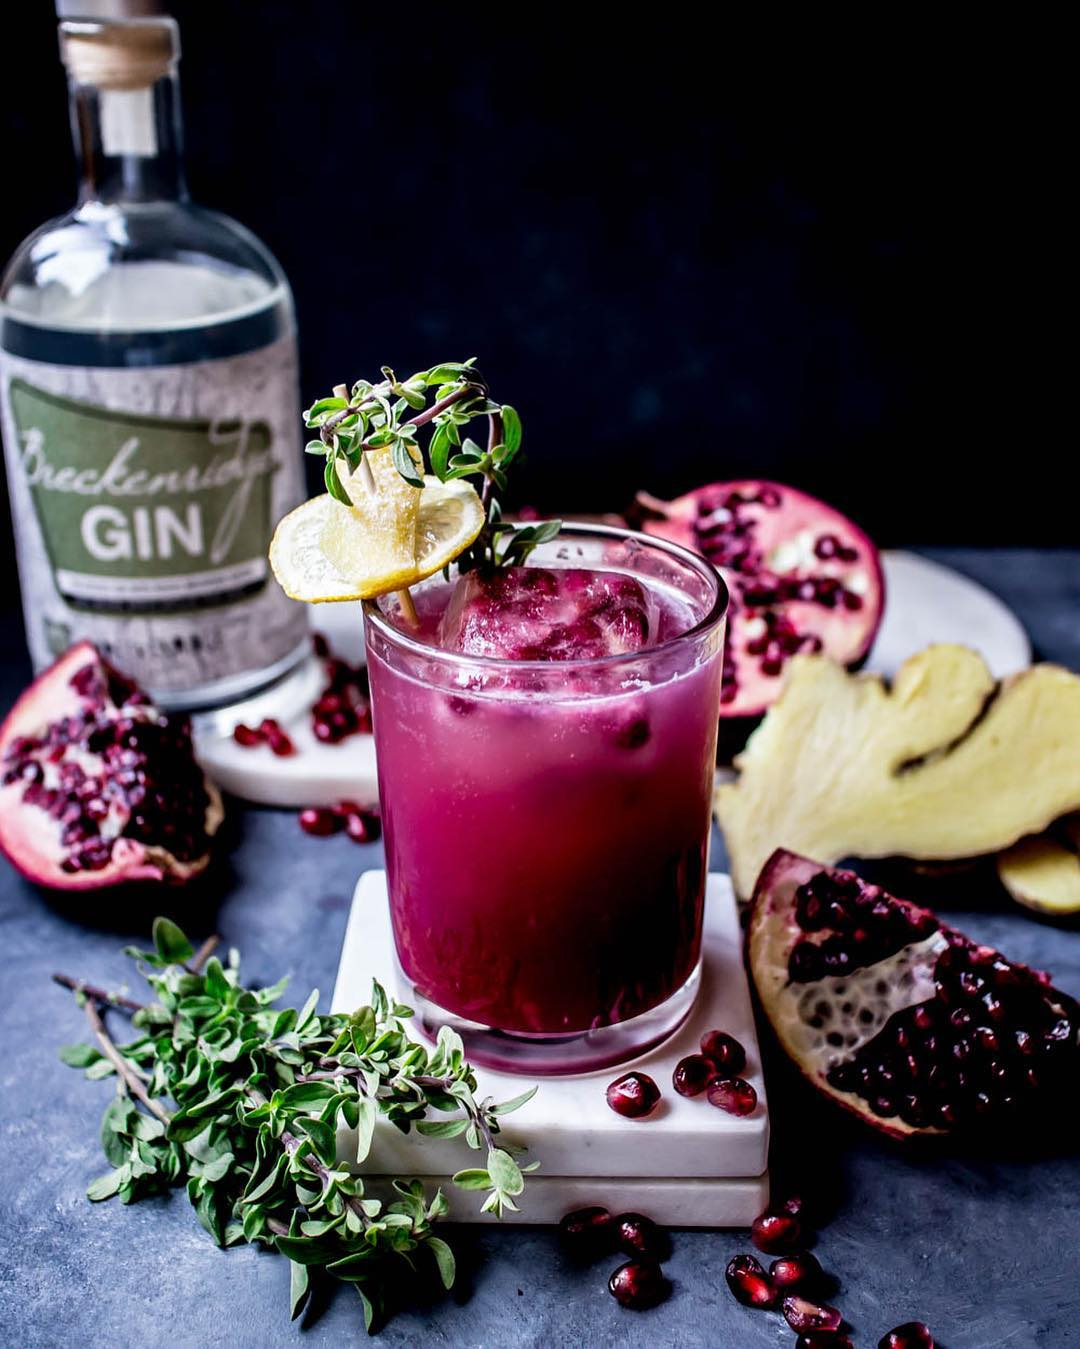 Our partner, @c.r.a.v.i.n.g.s Is a master of cocktails. Check out this light and refreshing drink, perfect for entertaining this holiday season! . . Pomegranate Gin(ger) Fizz